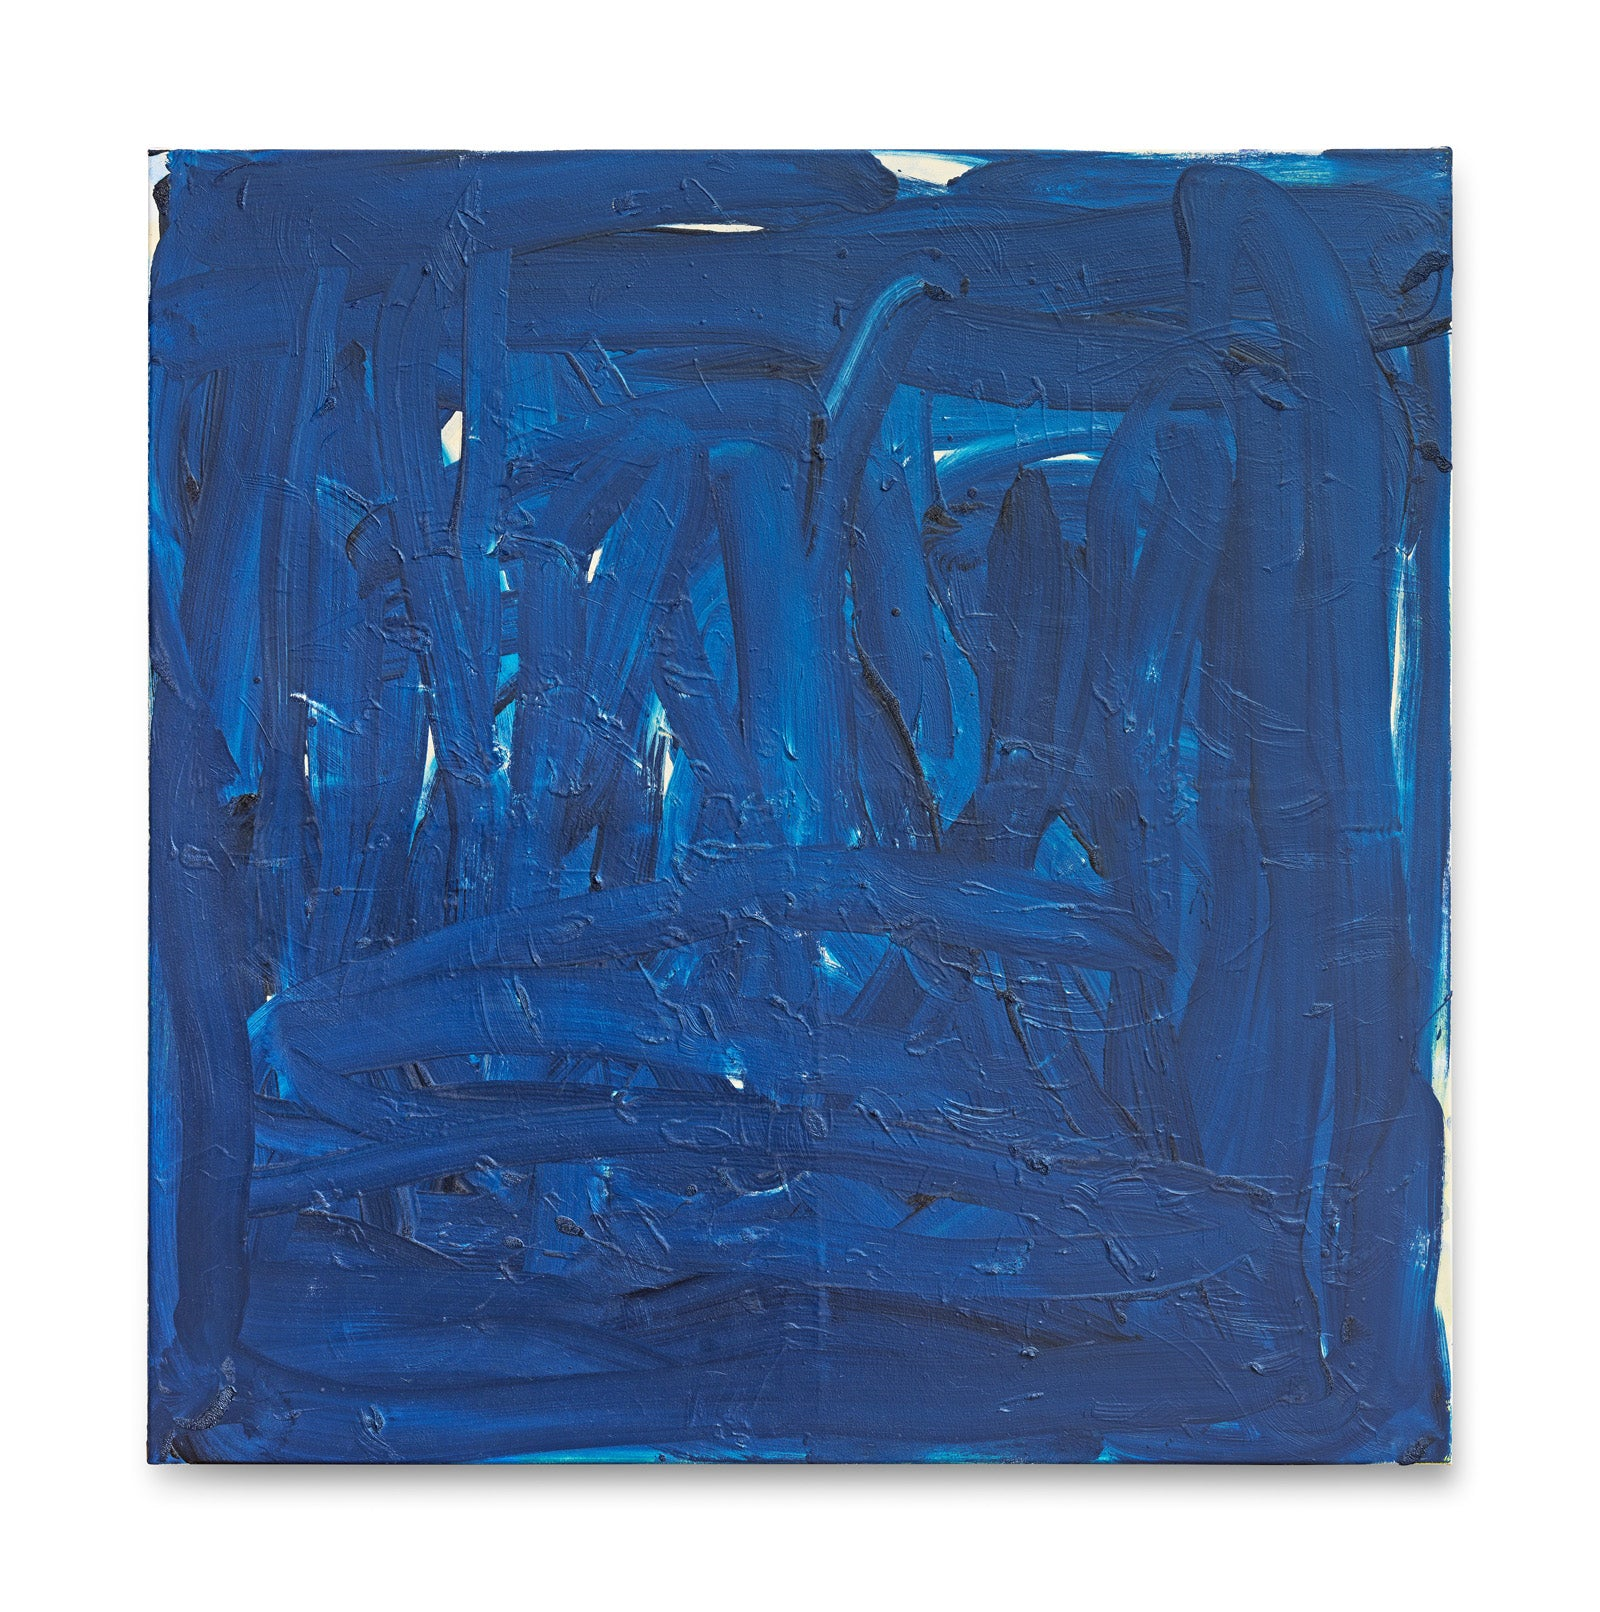 Lizza May David, Blue Cover, 2016